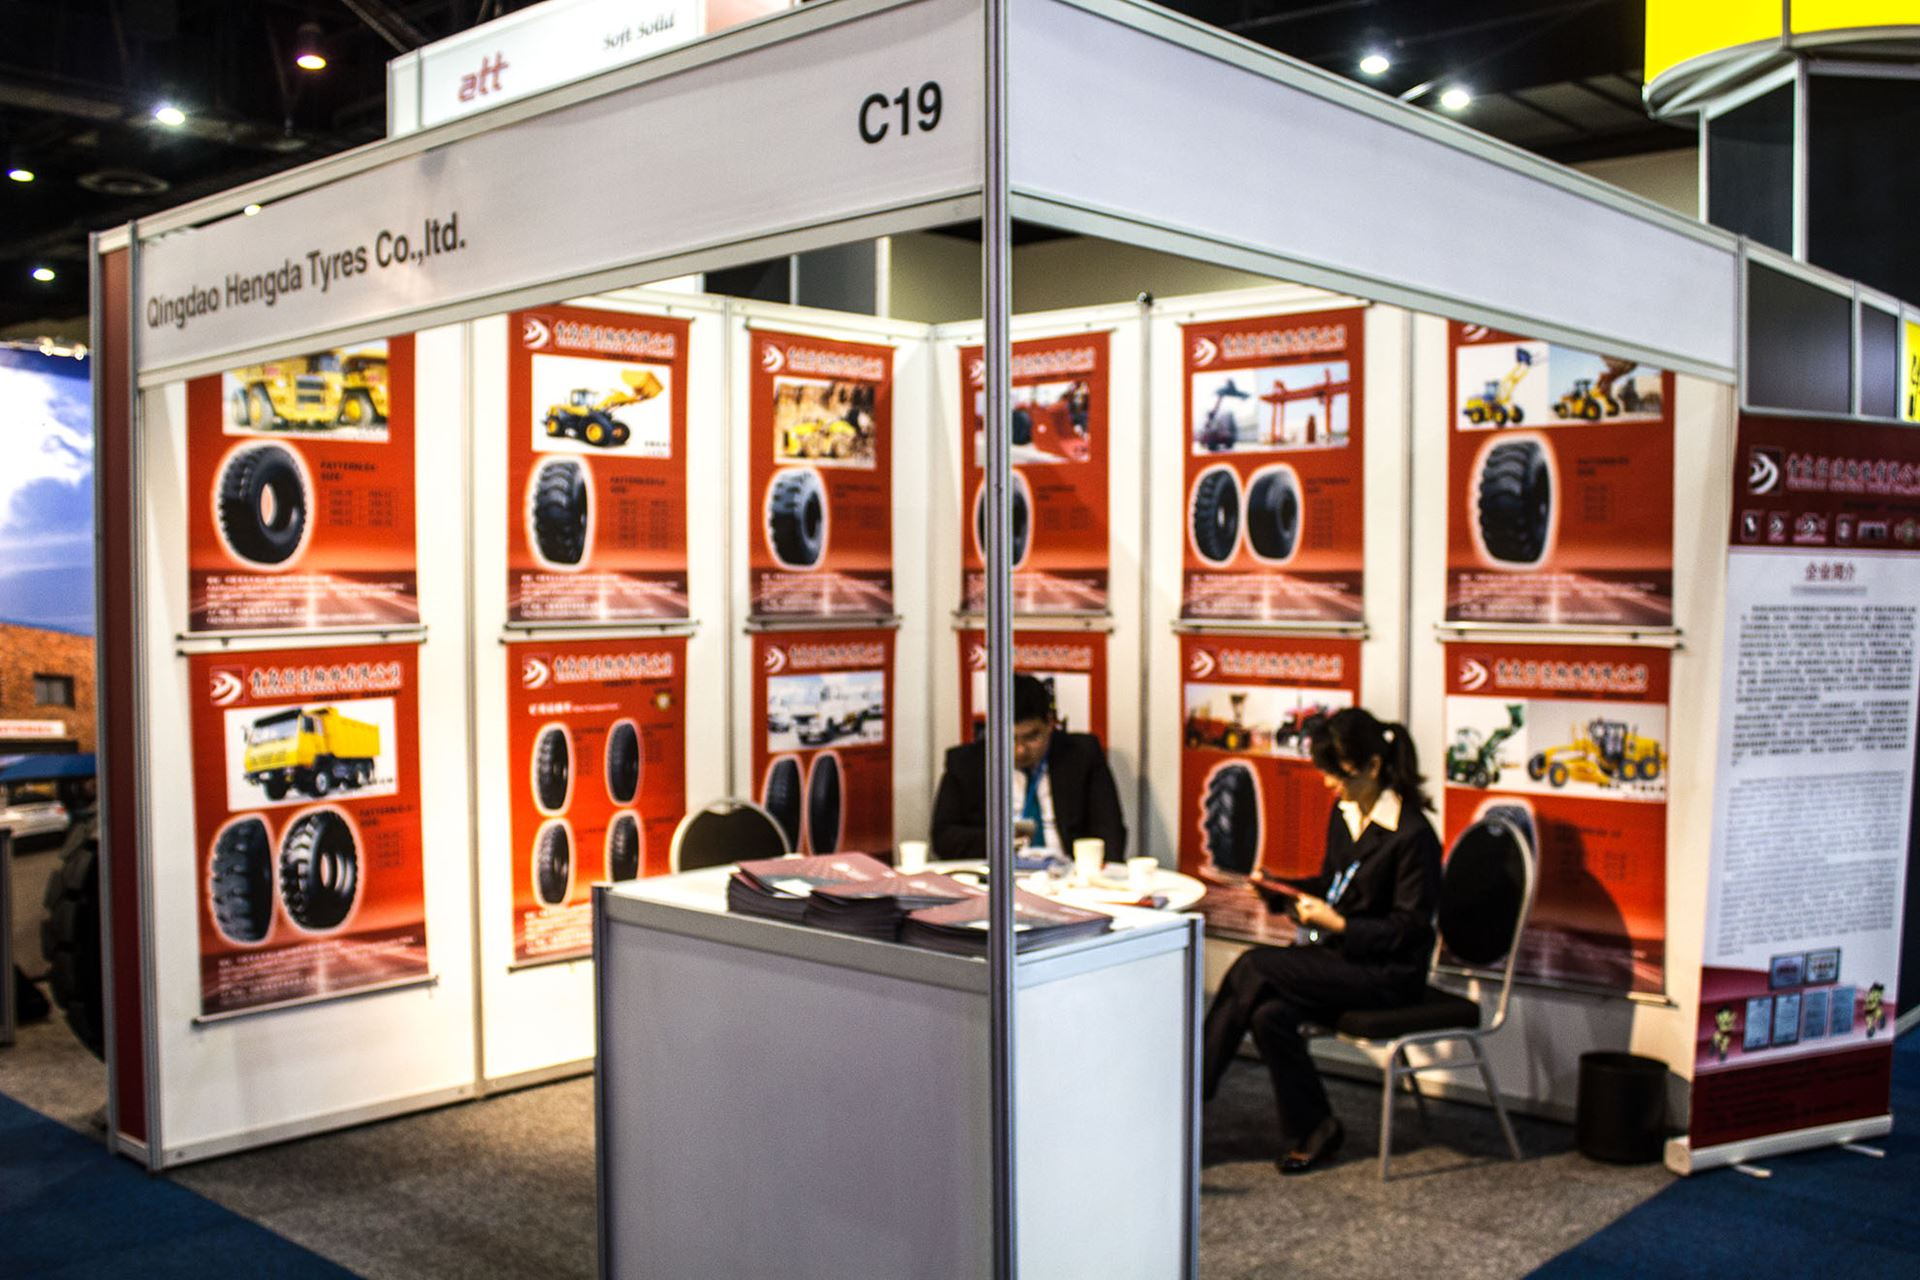 Tyre-Expo-South-Africa-2014-Qingdao-Tyres